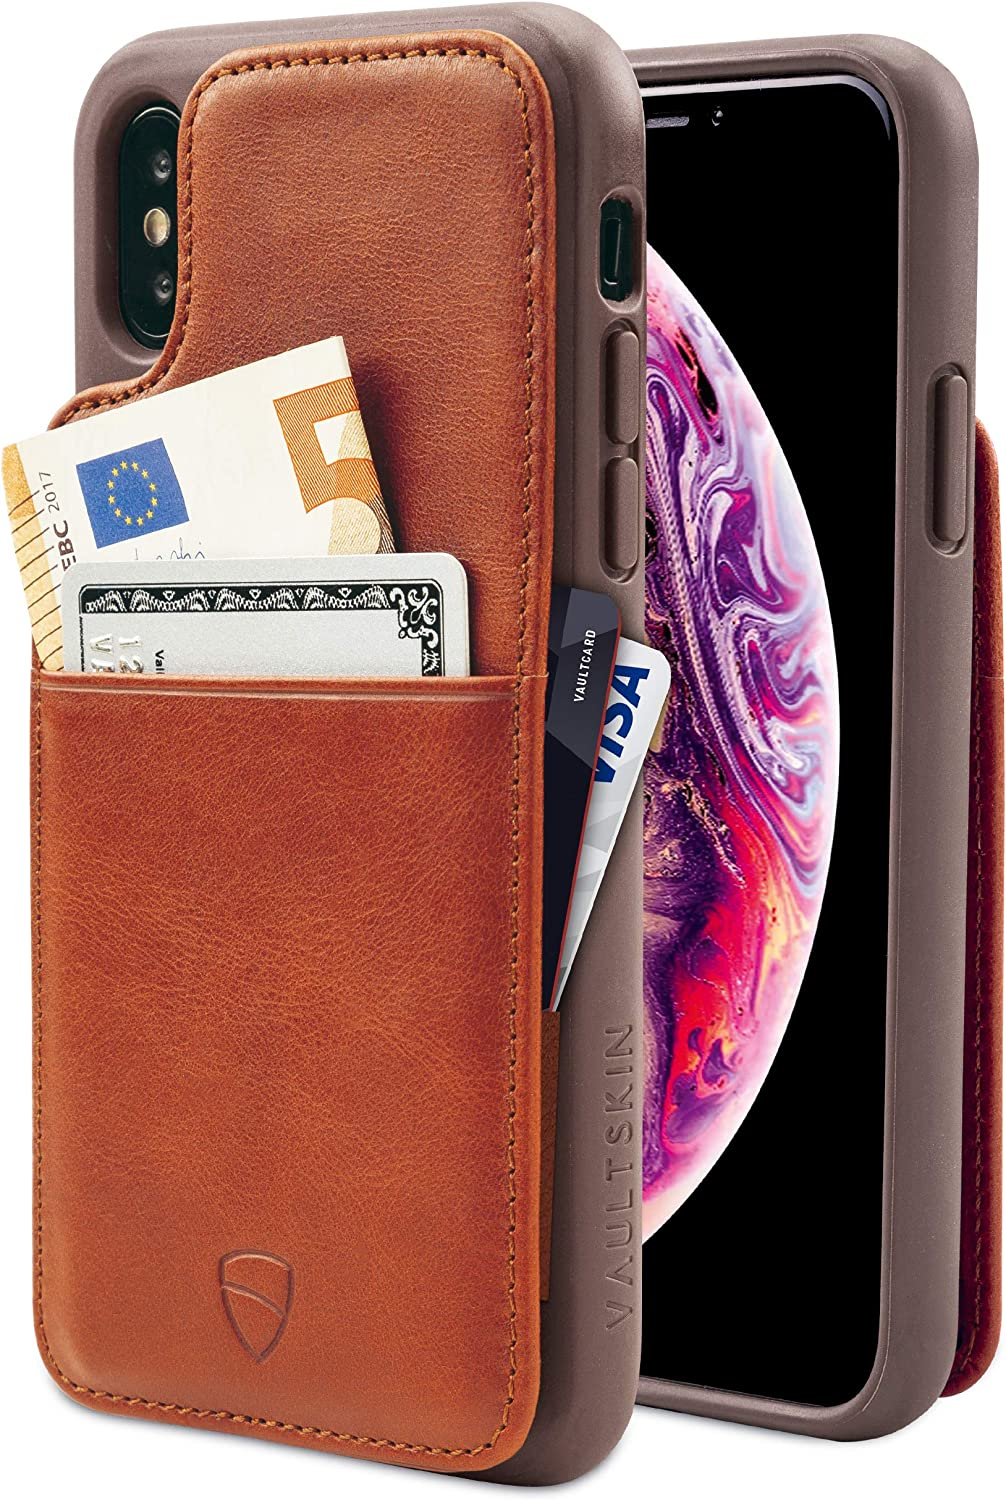 Vaultskin Eton Armour iPhone case with Leather Wallet (Cognac, iPhone X/Xs)